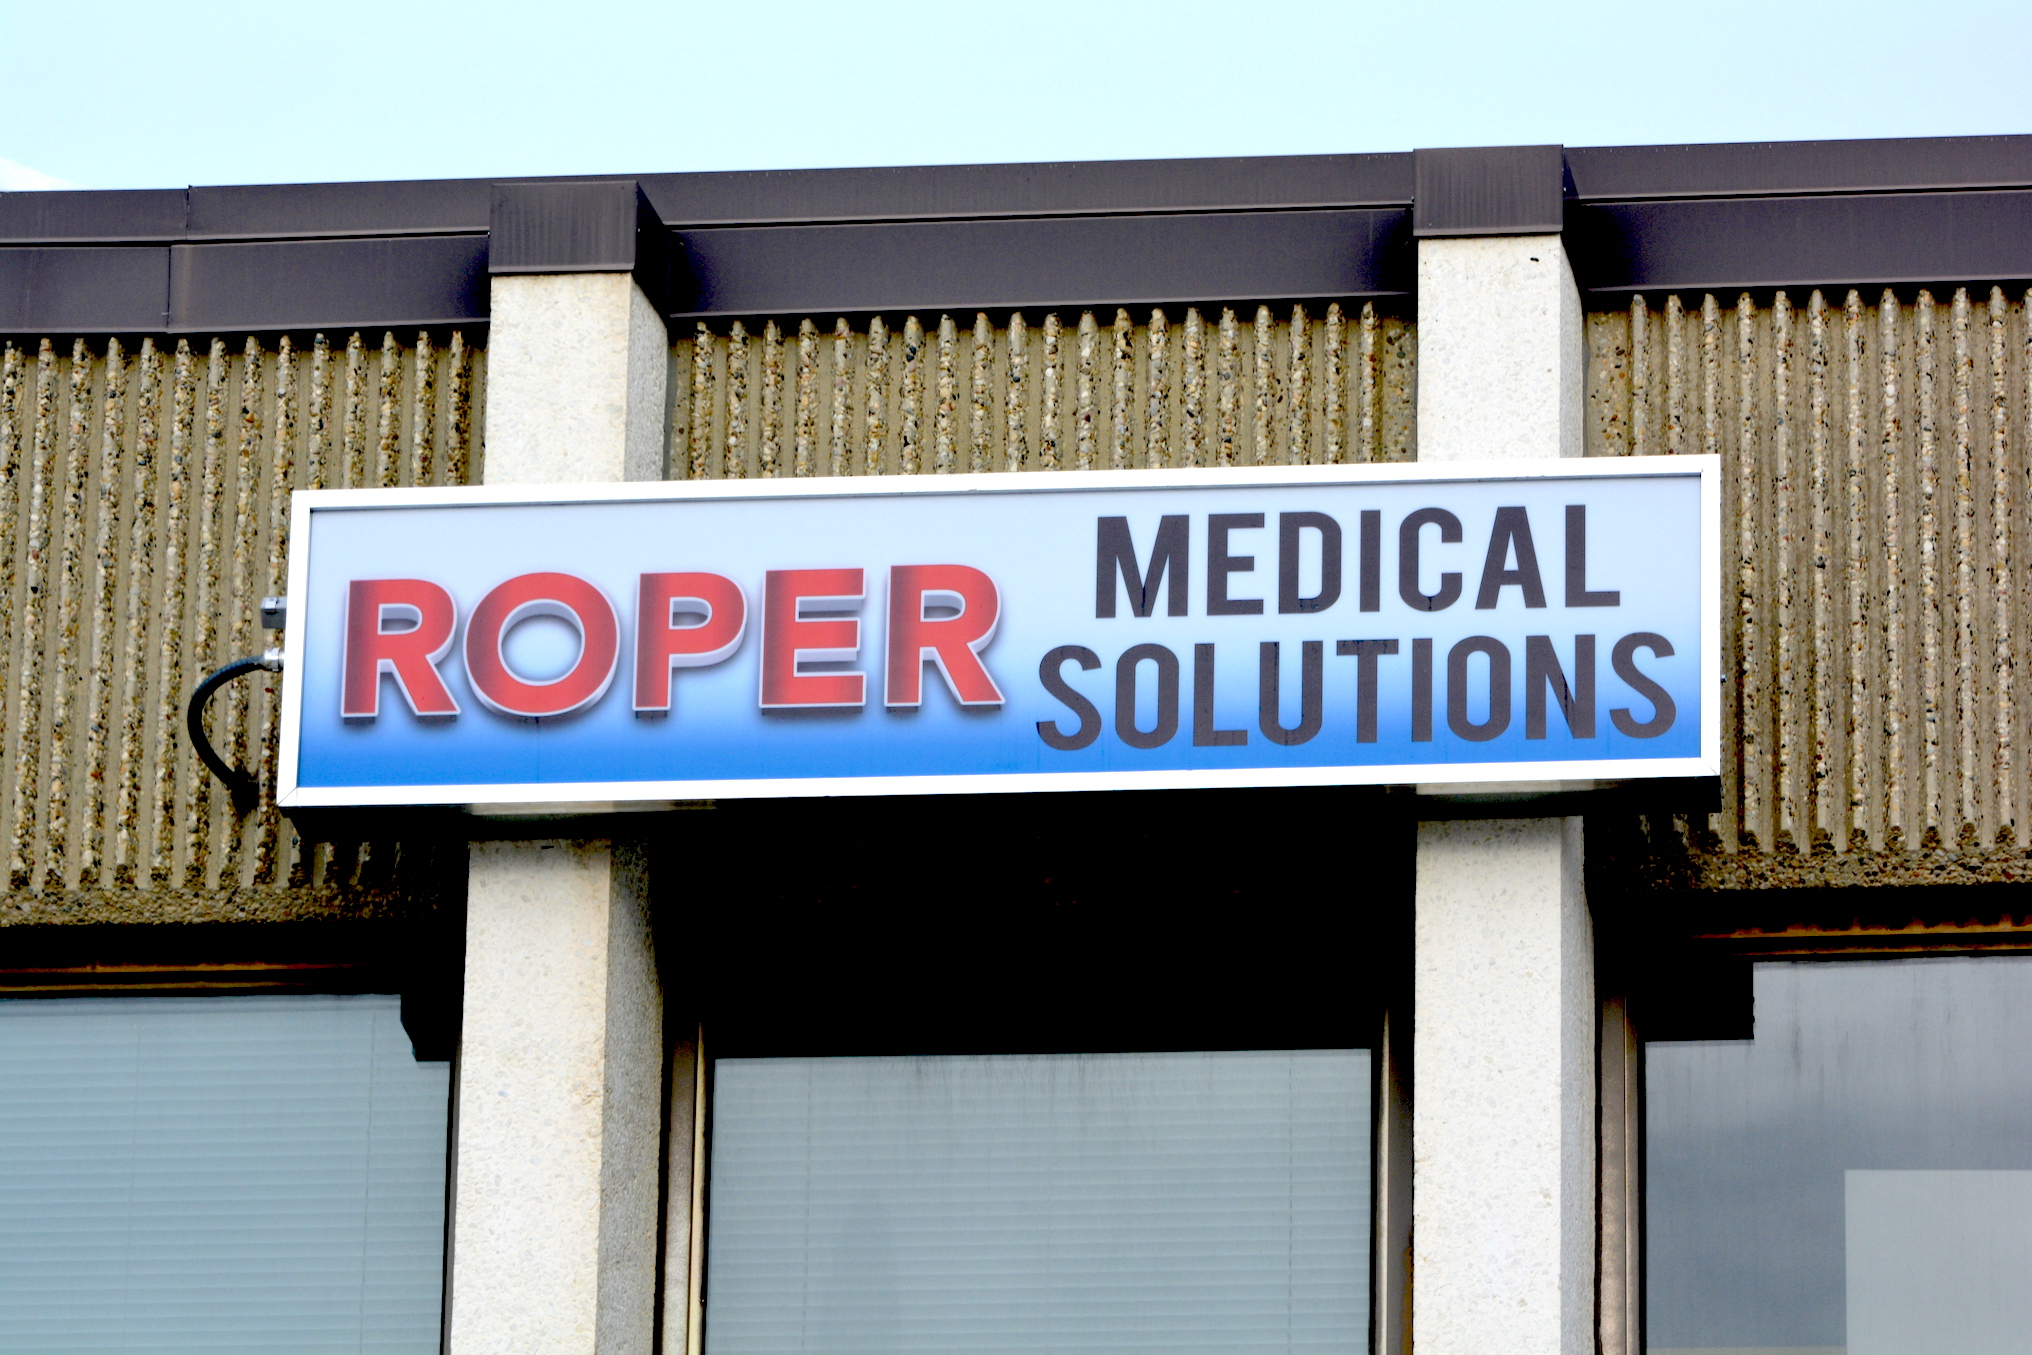 Cabinet Sign - Roper Medical Solutions by LED Pros